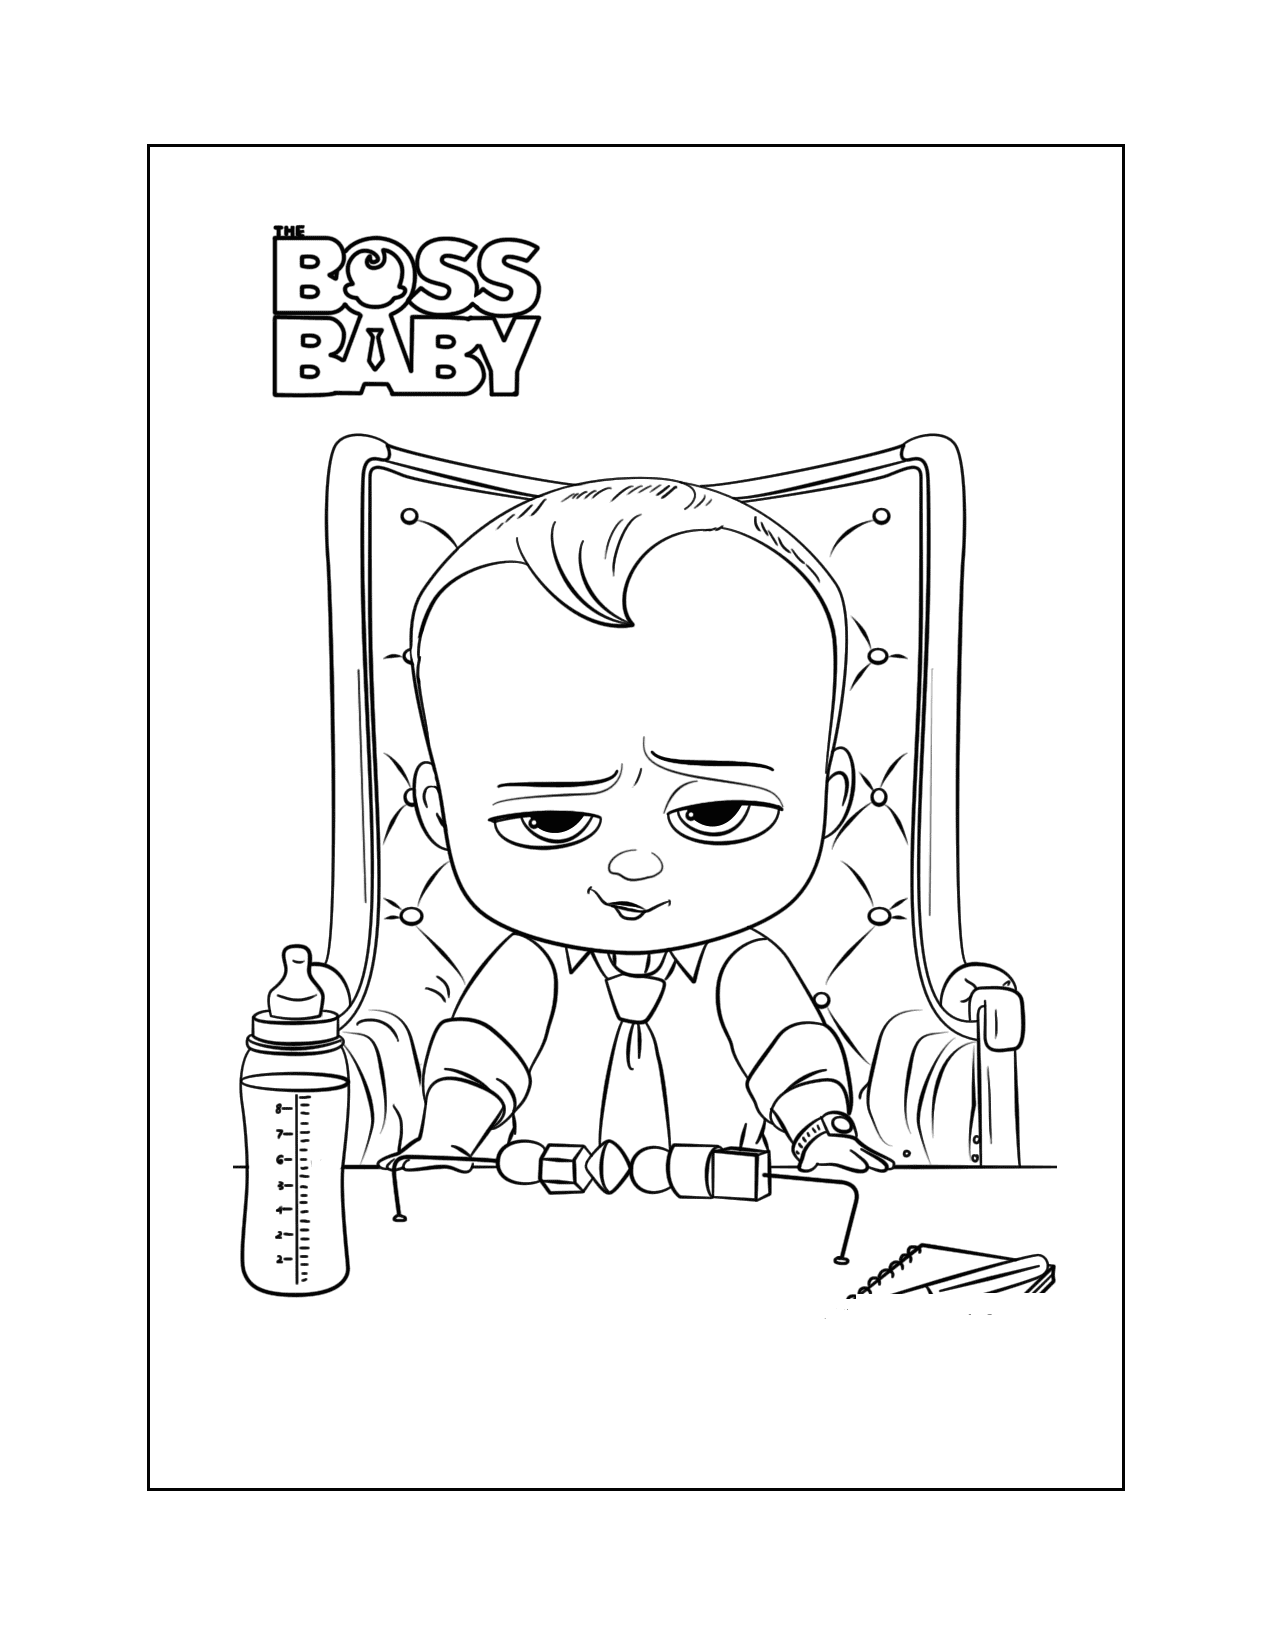 The Boss Baby At His Desk Coloring Page